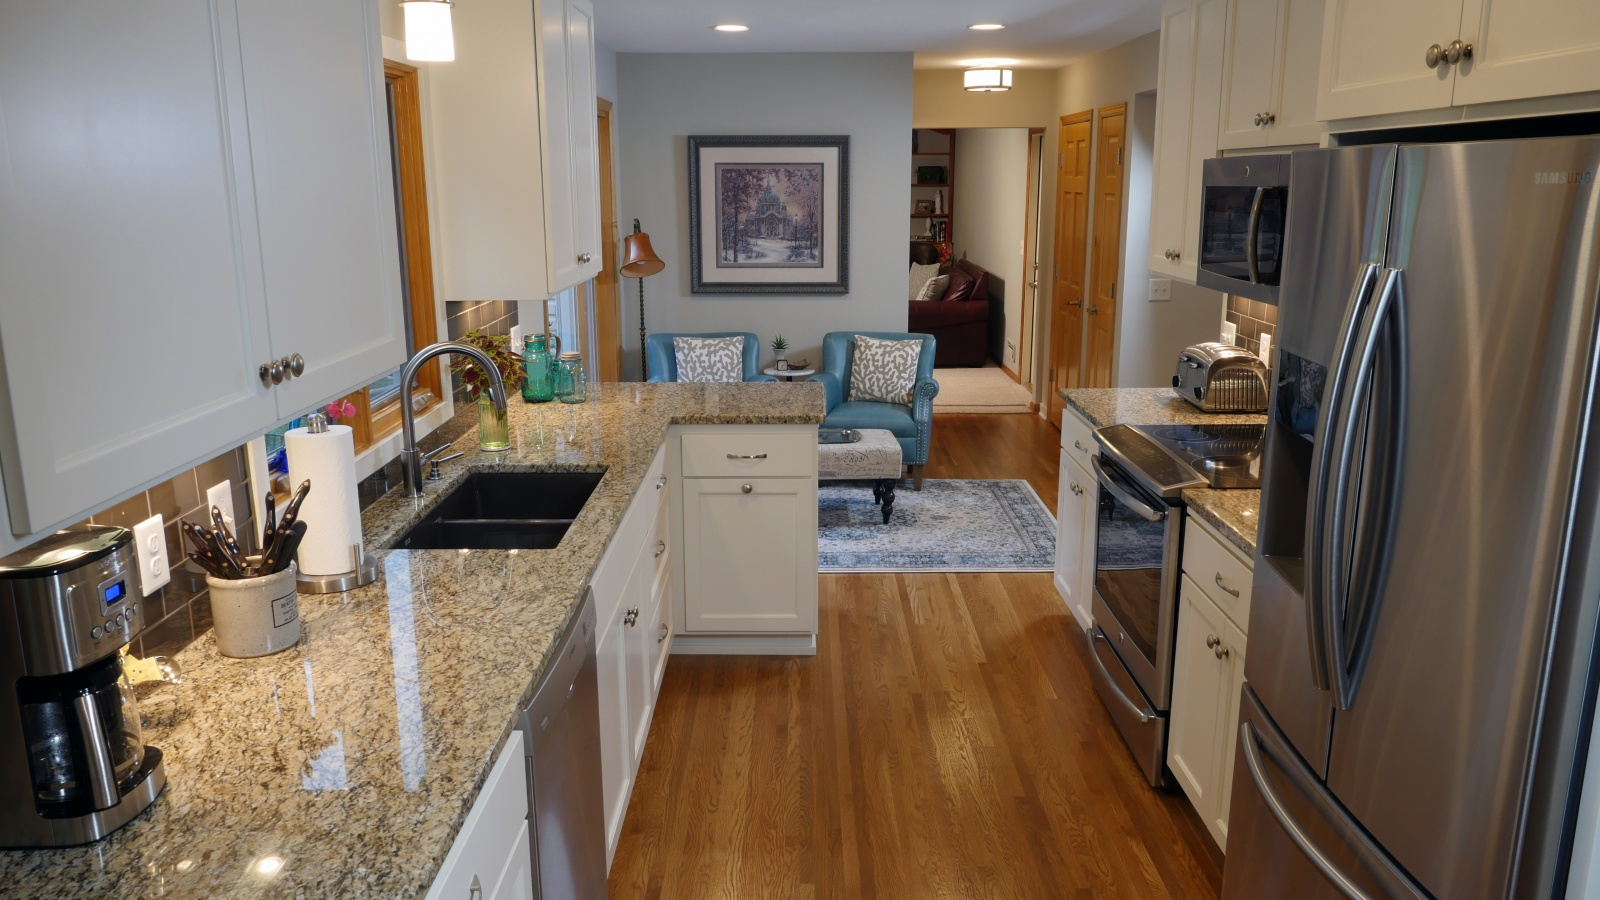 Top 5 Mistakes To Avoid When Remodeling J Carsten Remodeling